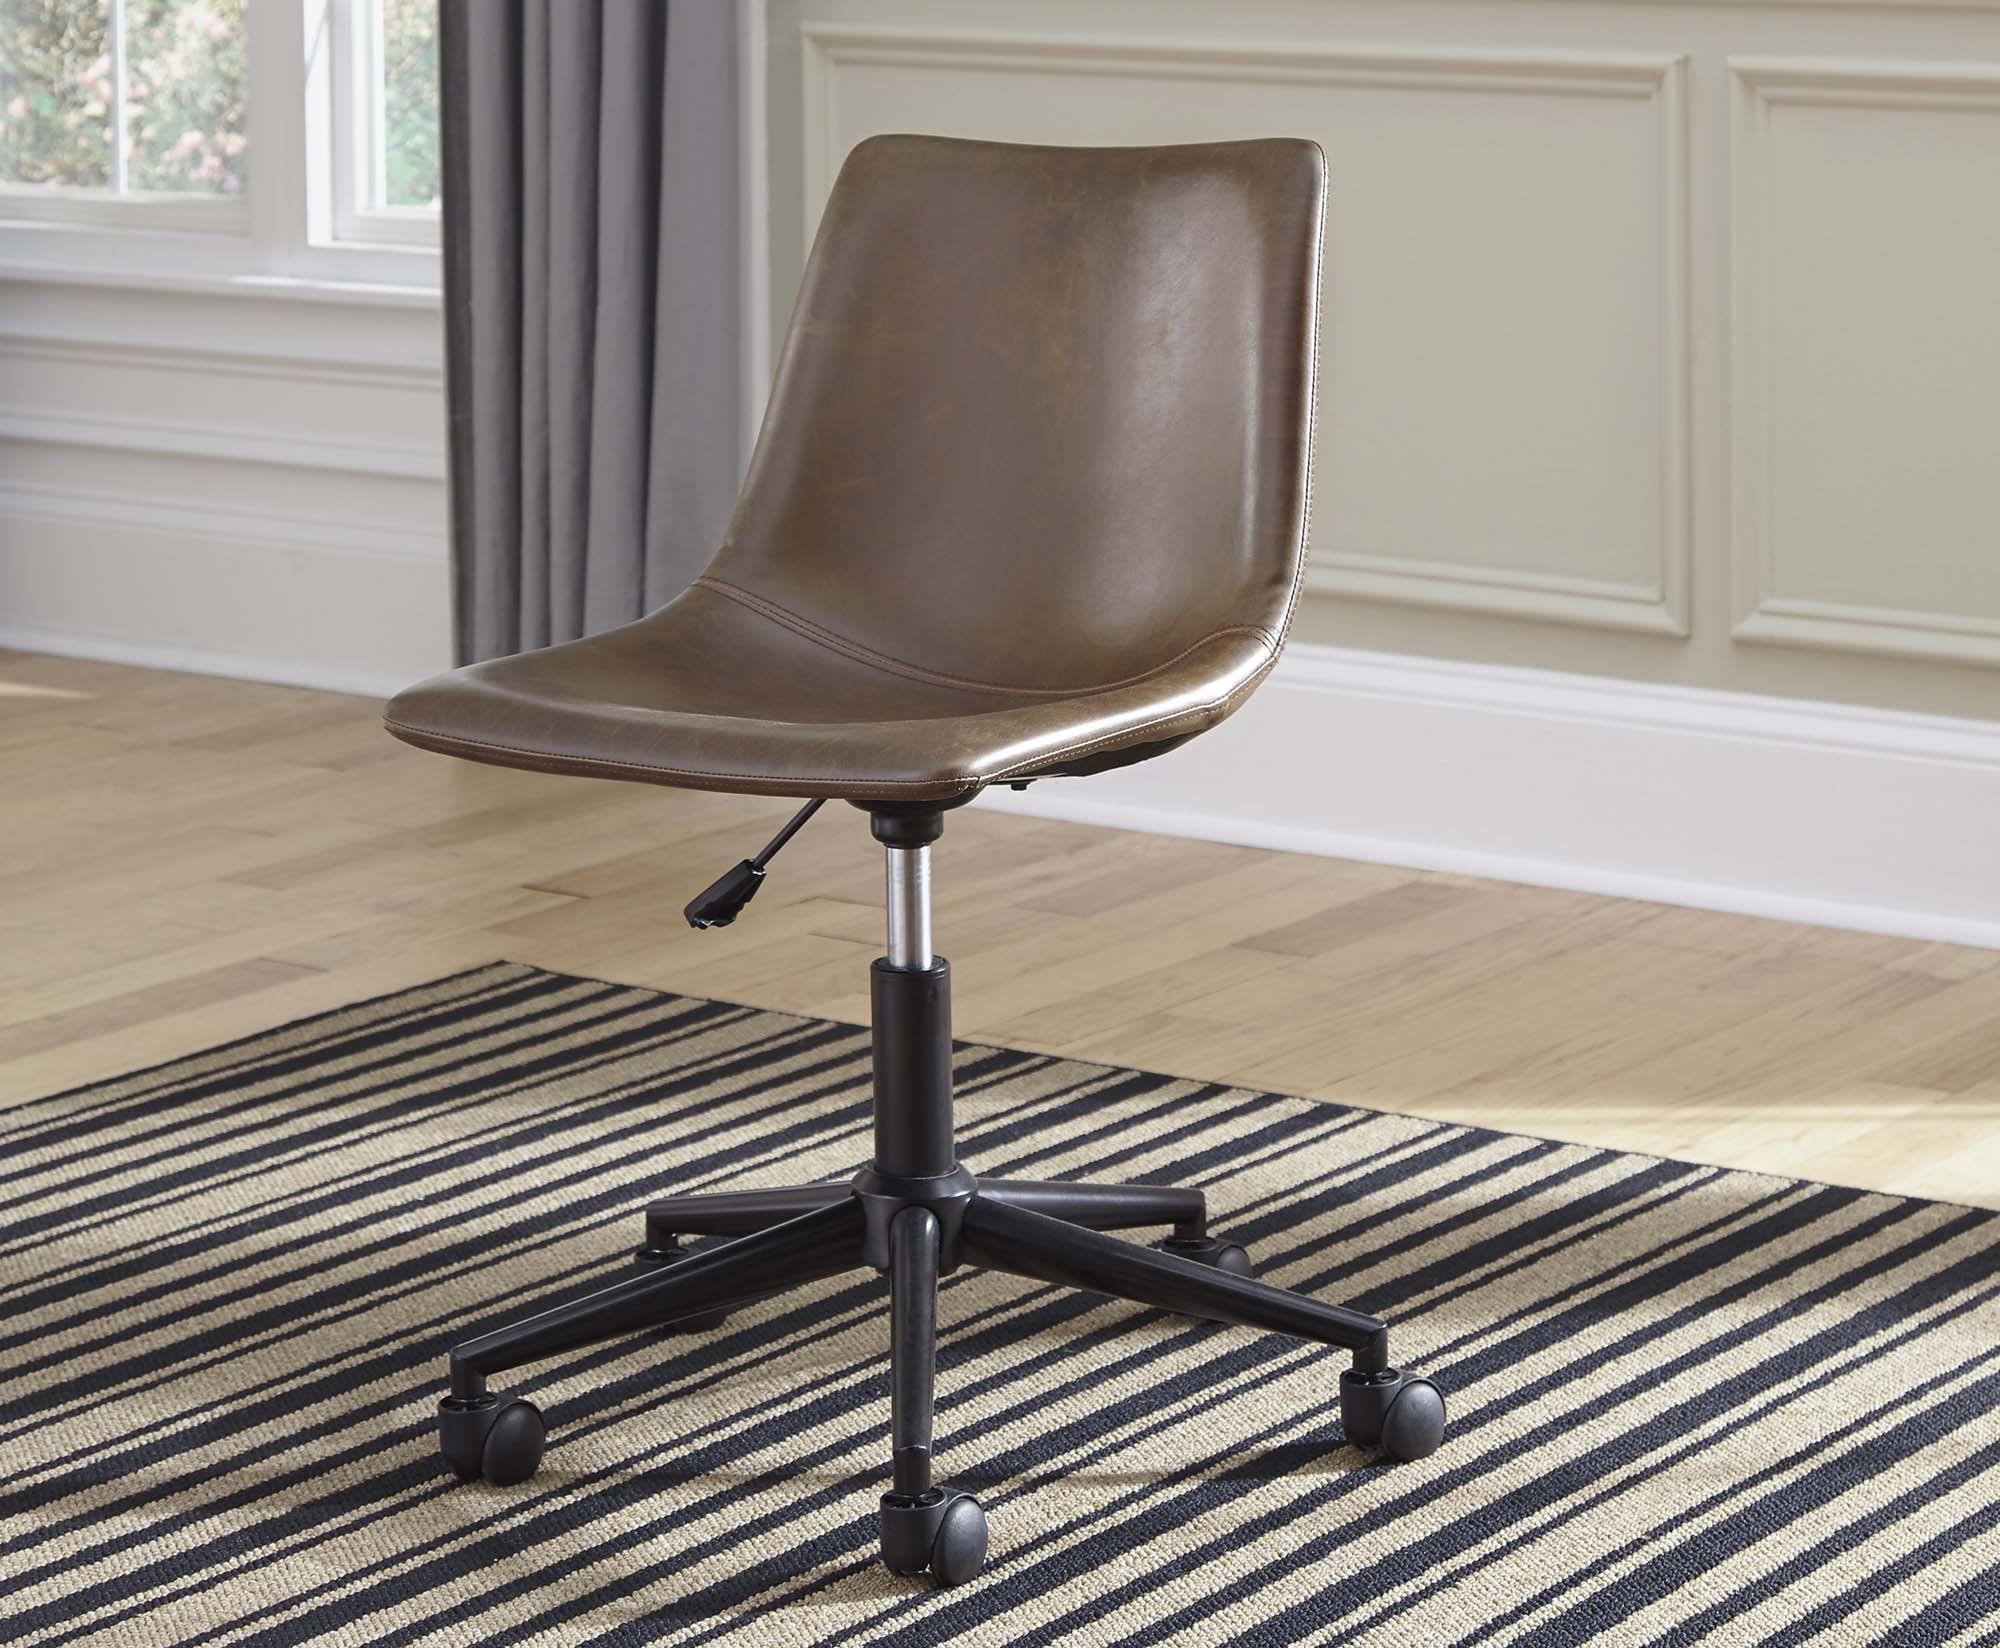 Brown Swivel Office Chair - MJM Furniture